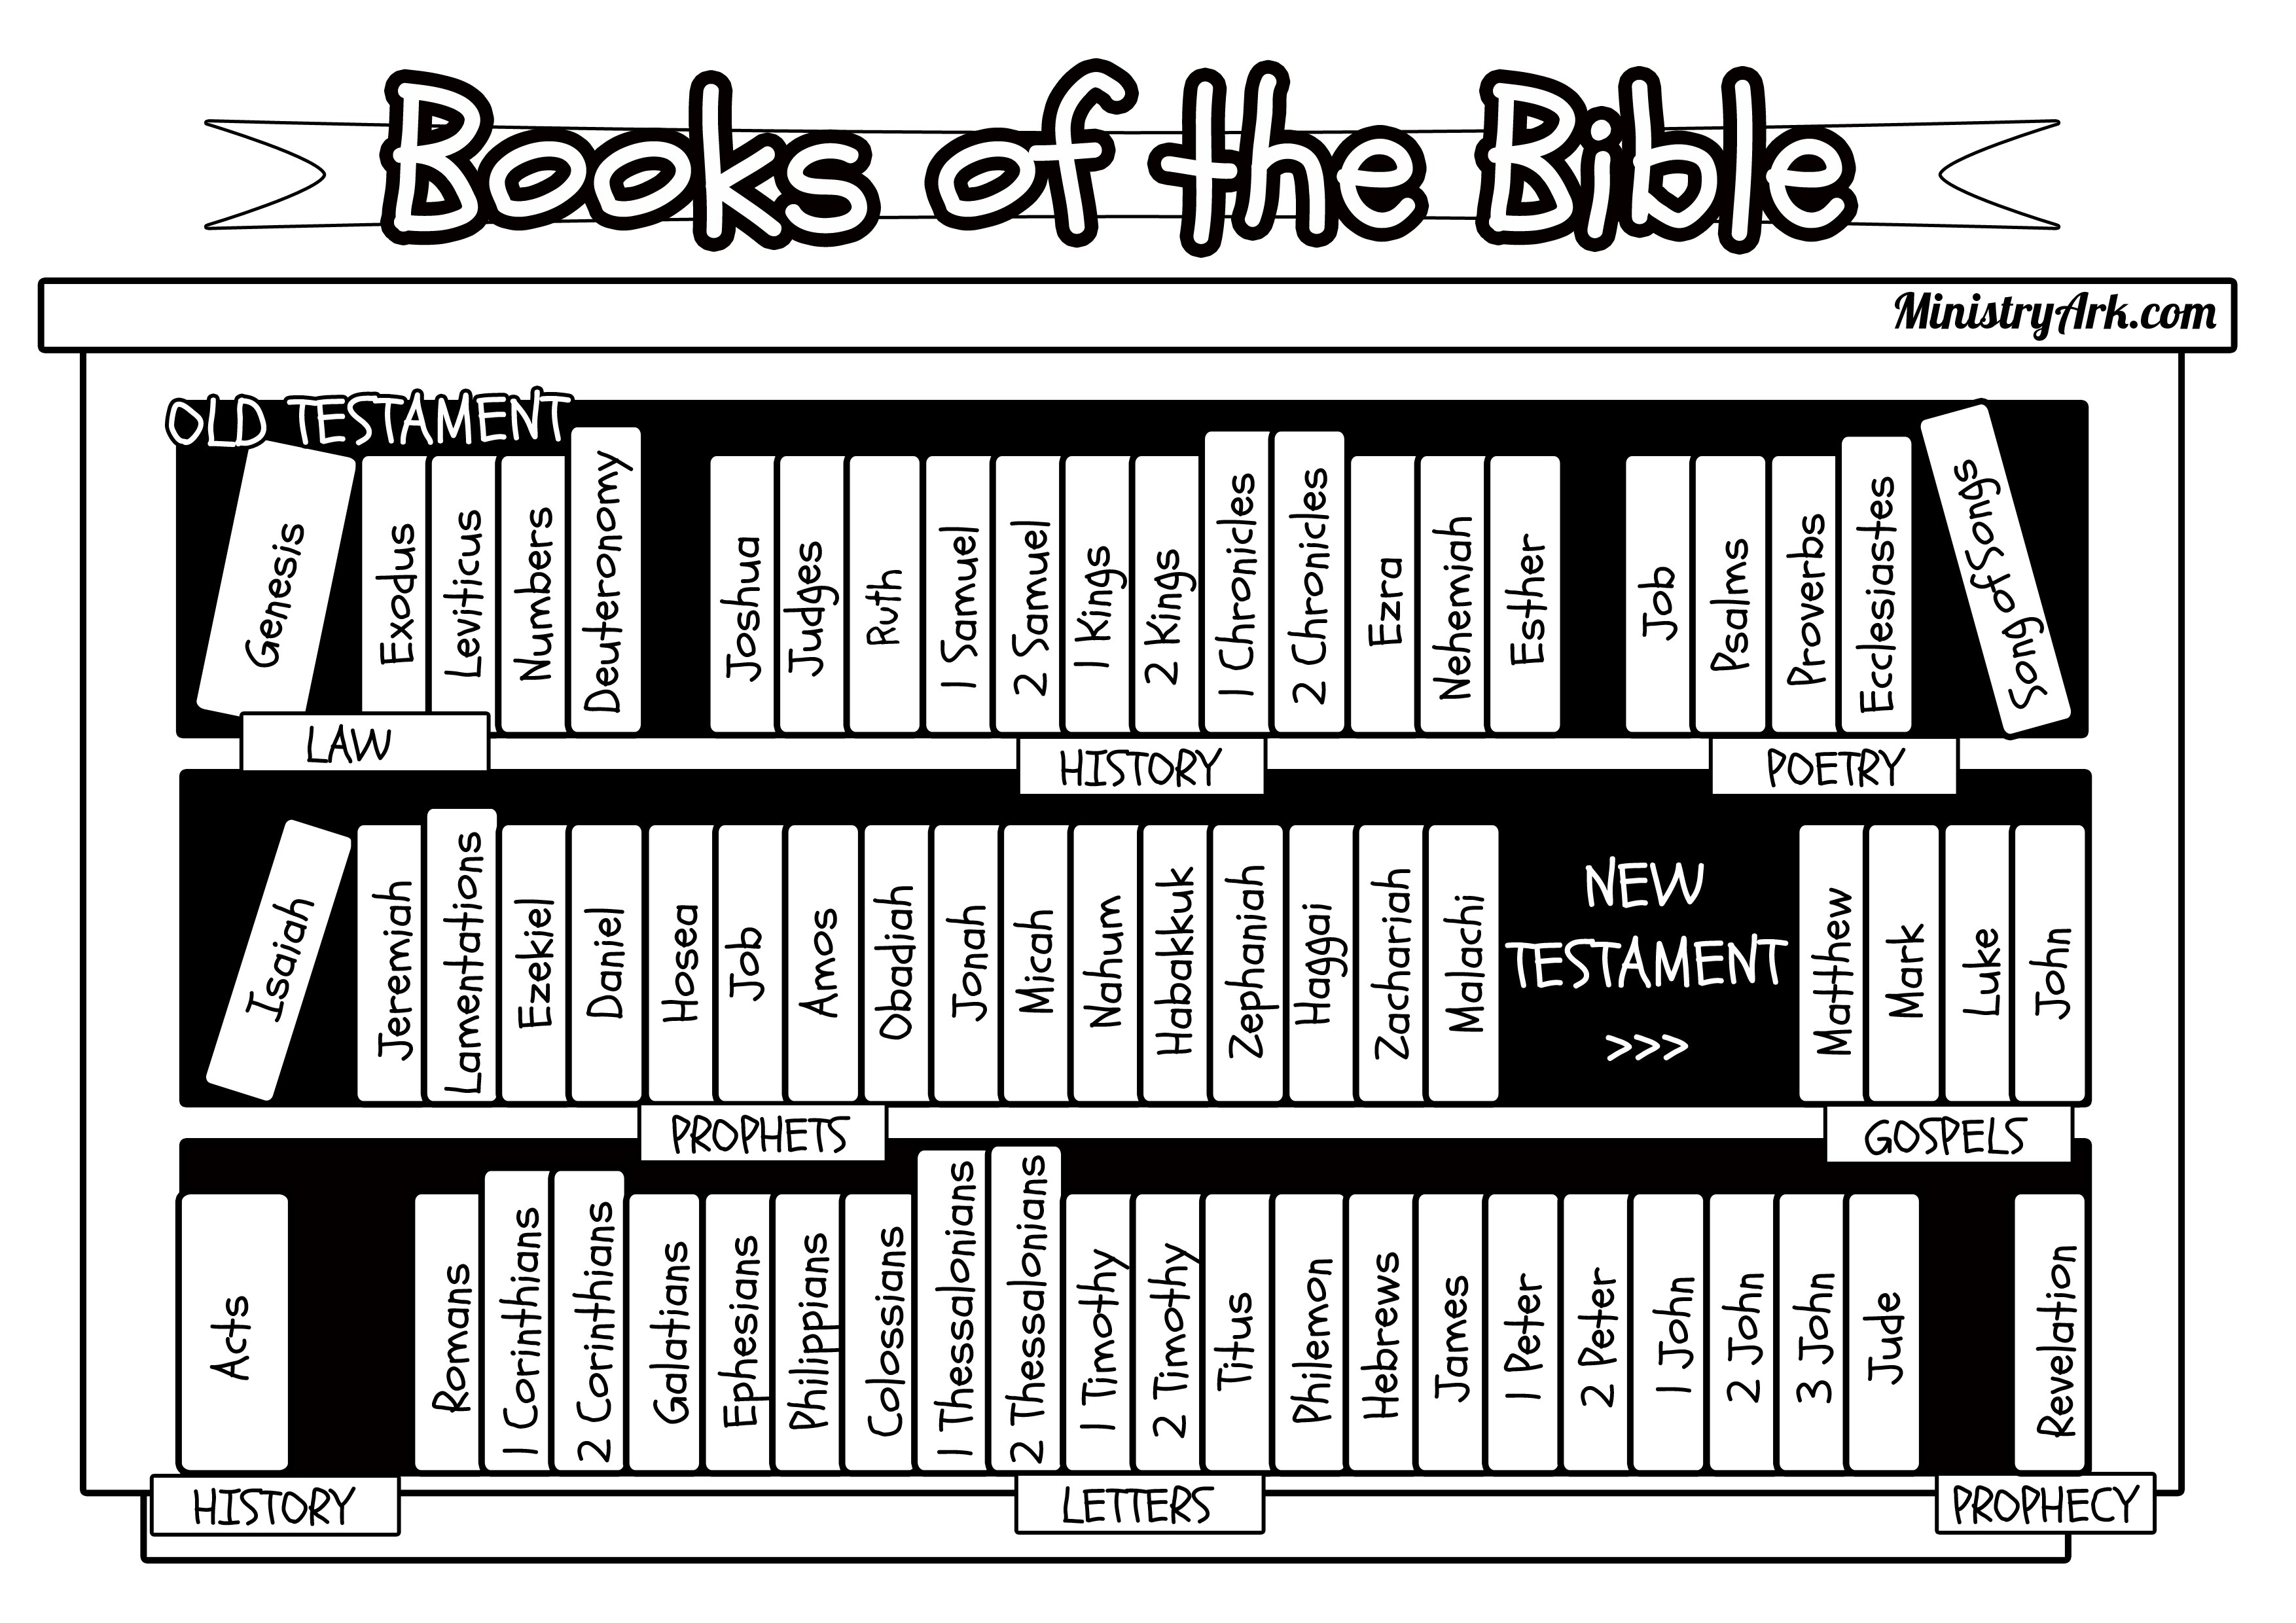 66 books of the bible coloring pages photo - 1